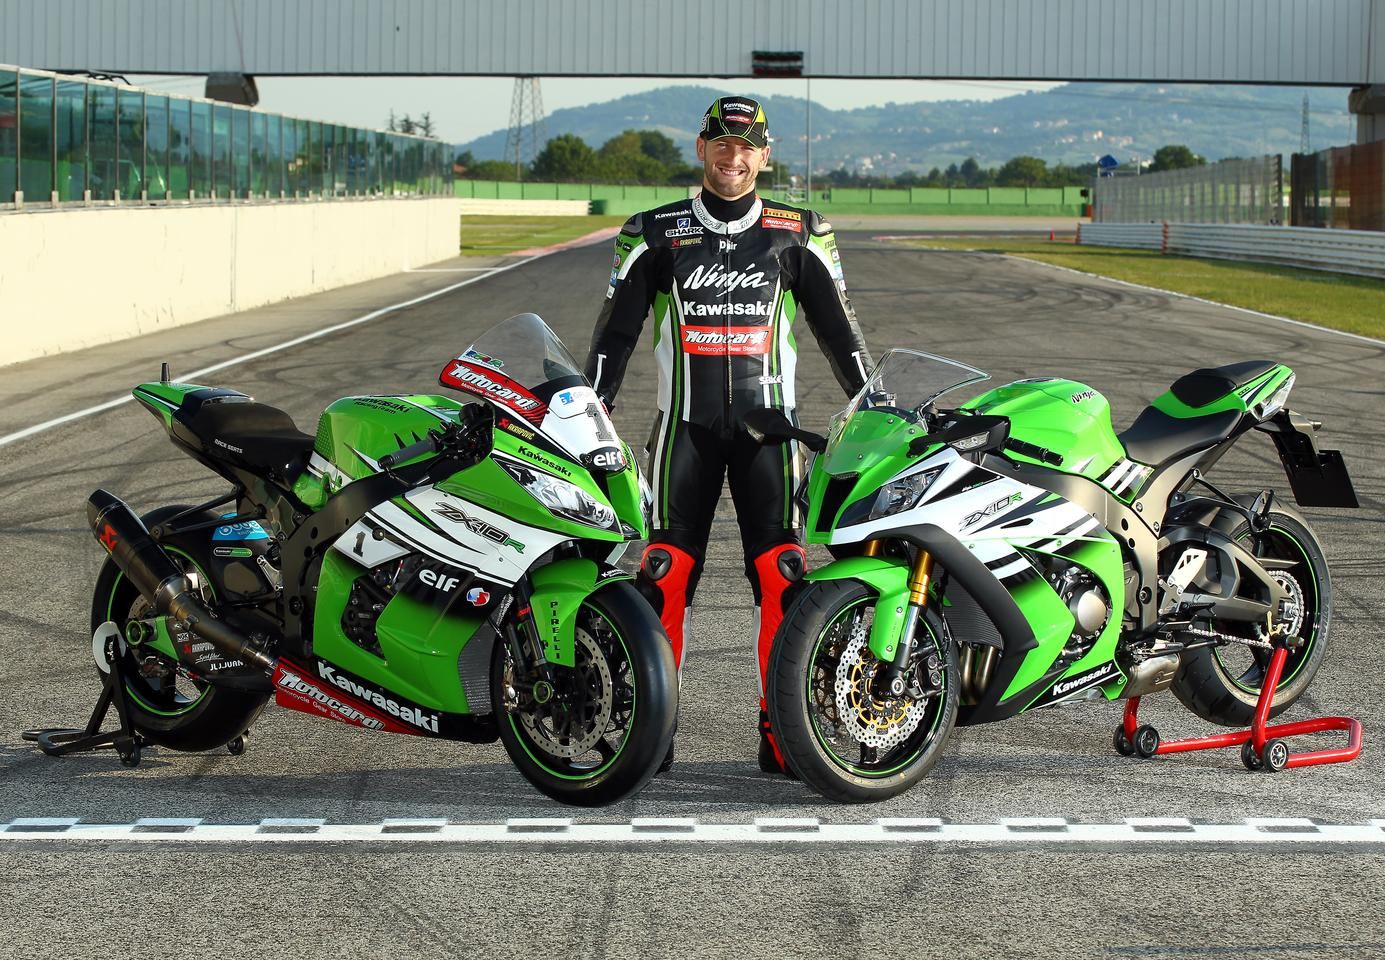 Tom Sykes, 2013 WSBK Champion, poses between his racing Ninja (left) and the production model (right) that's currently on offer from Kawasaki